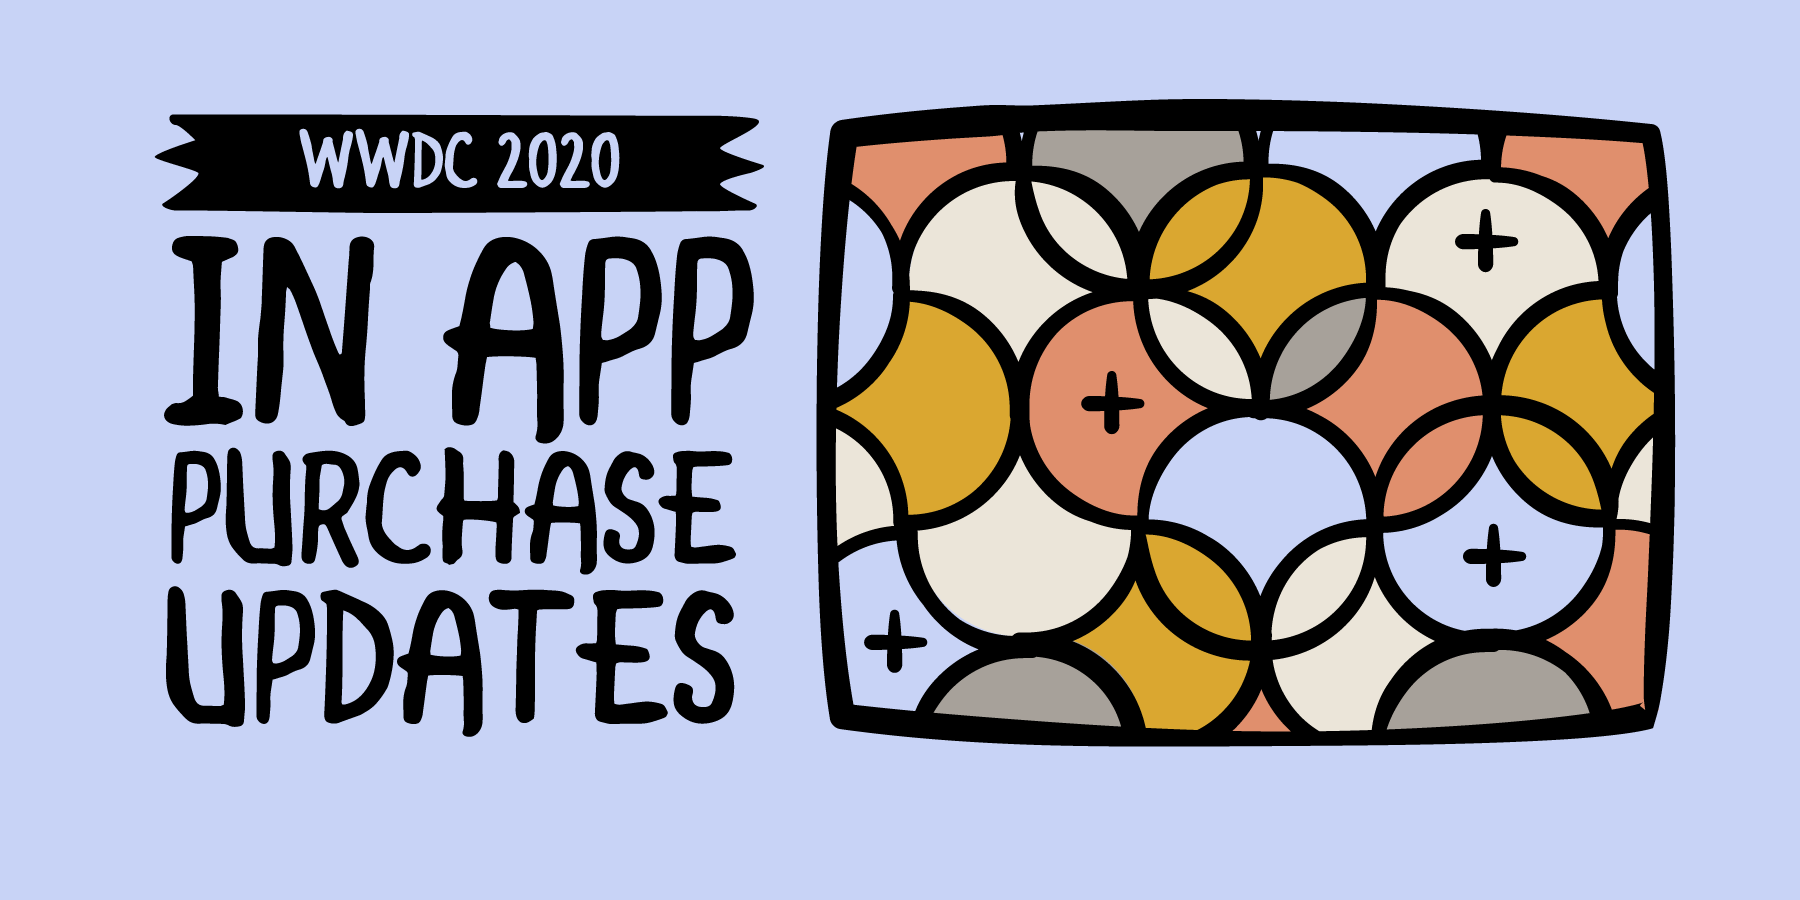 WWDC 2020: In App Purchase Updates [SUBSCRIBER]